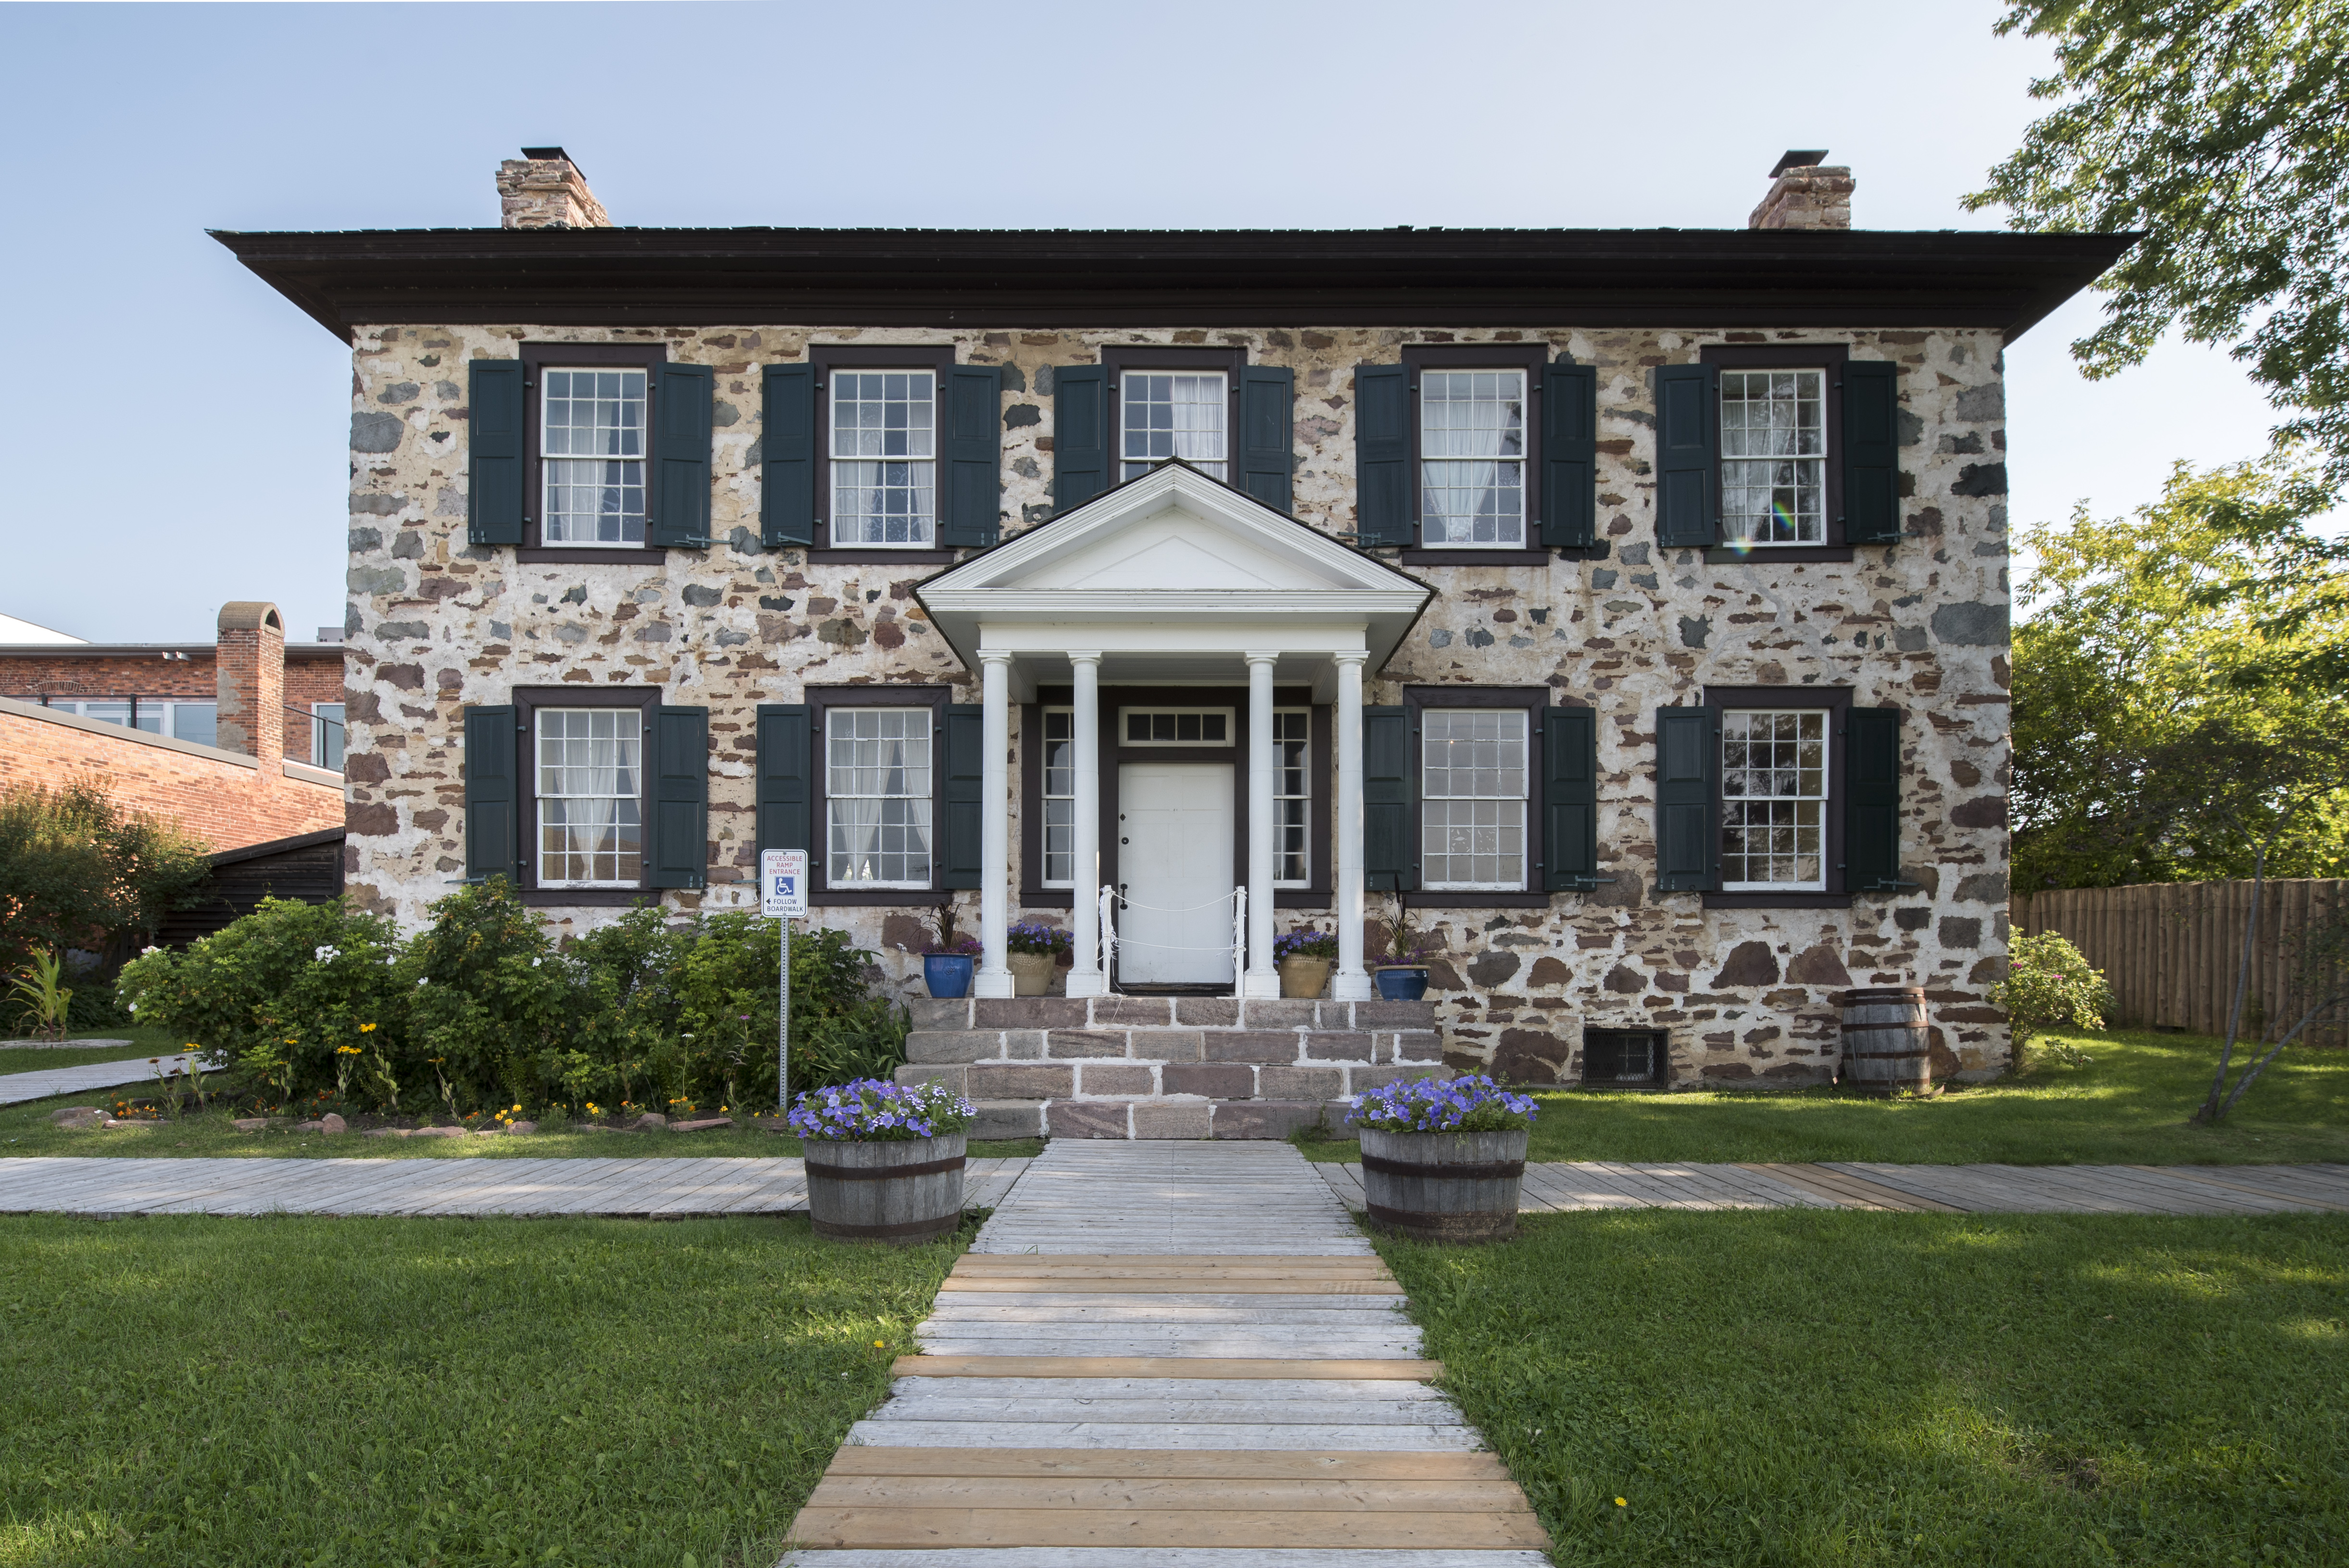 Two story stone building with walking and lawn in front.